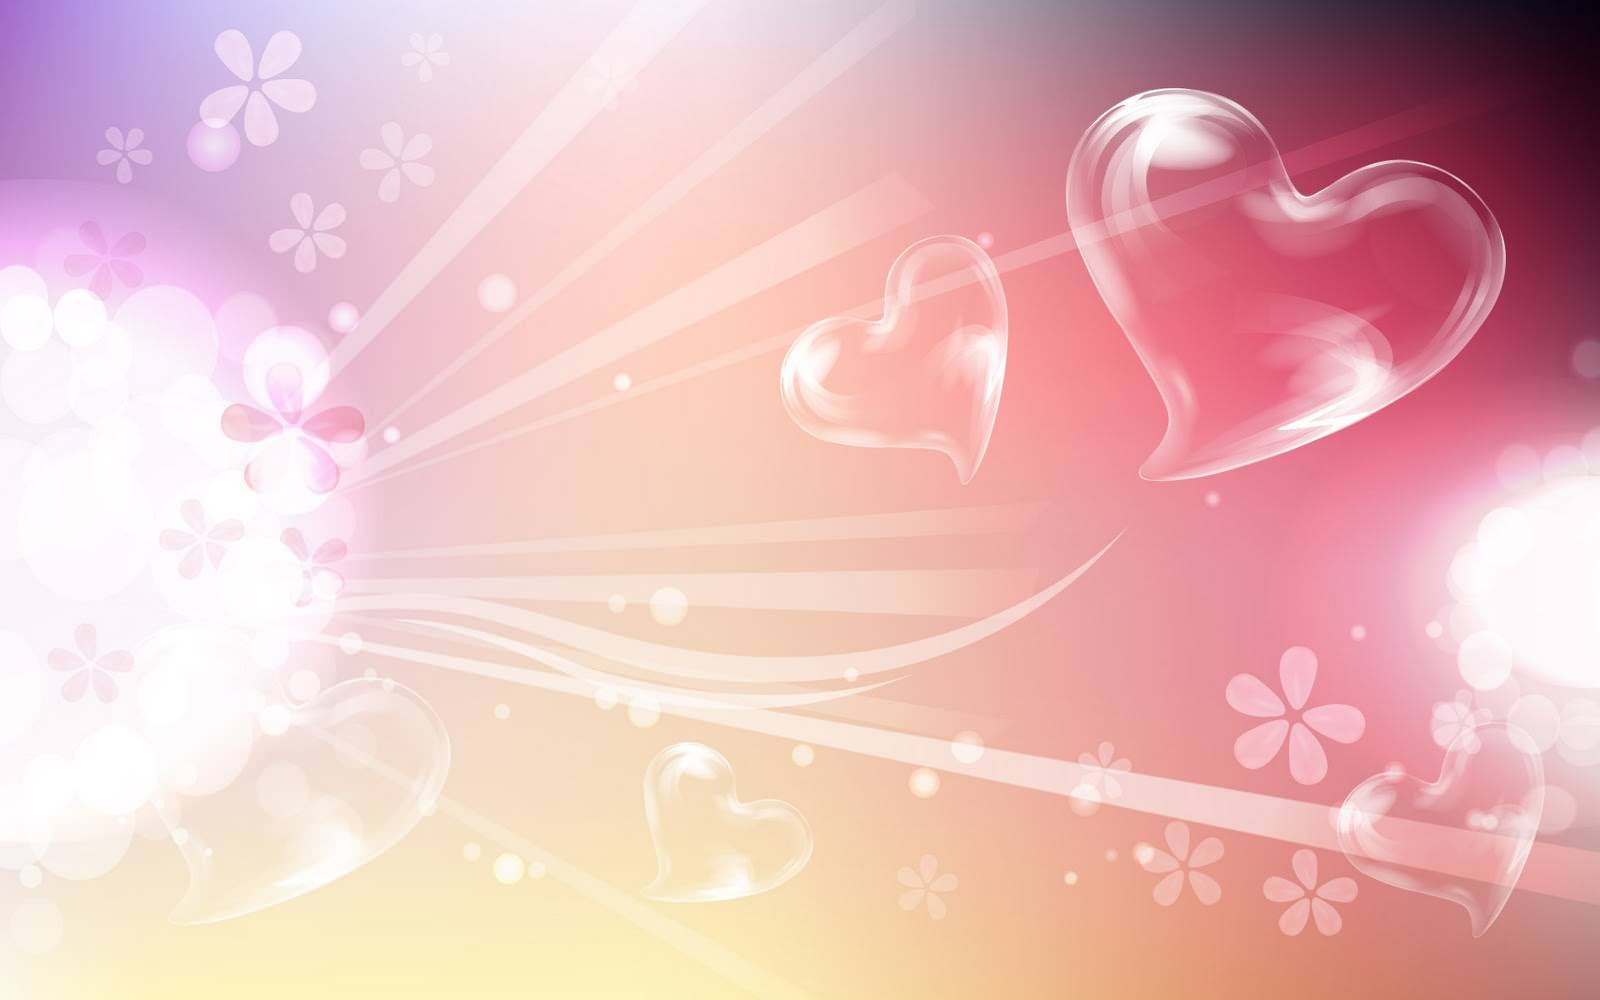 Love Wallpaper For Background : 22+ Love Backgrounds, Heart, Wallpapers, Images Freecreatives